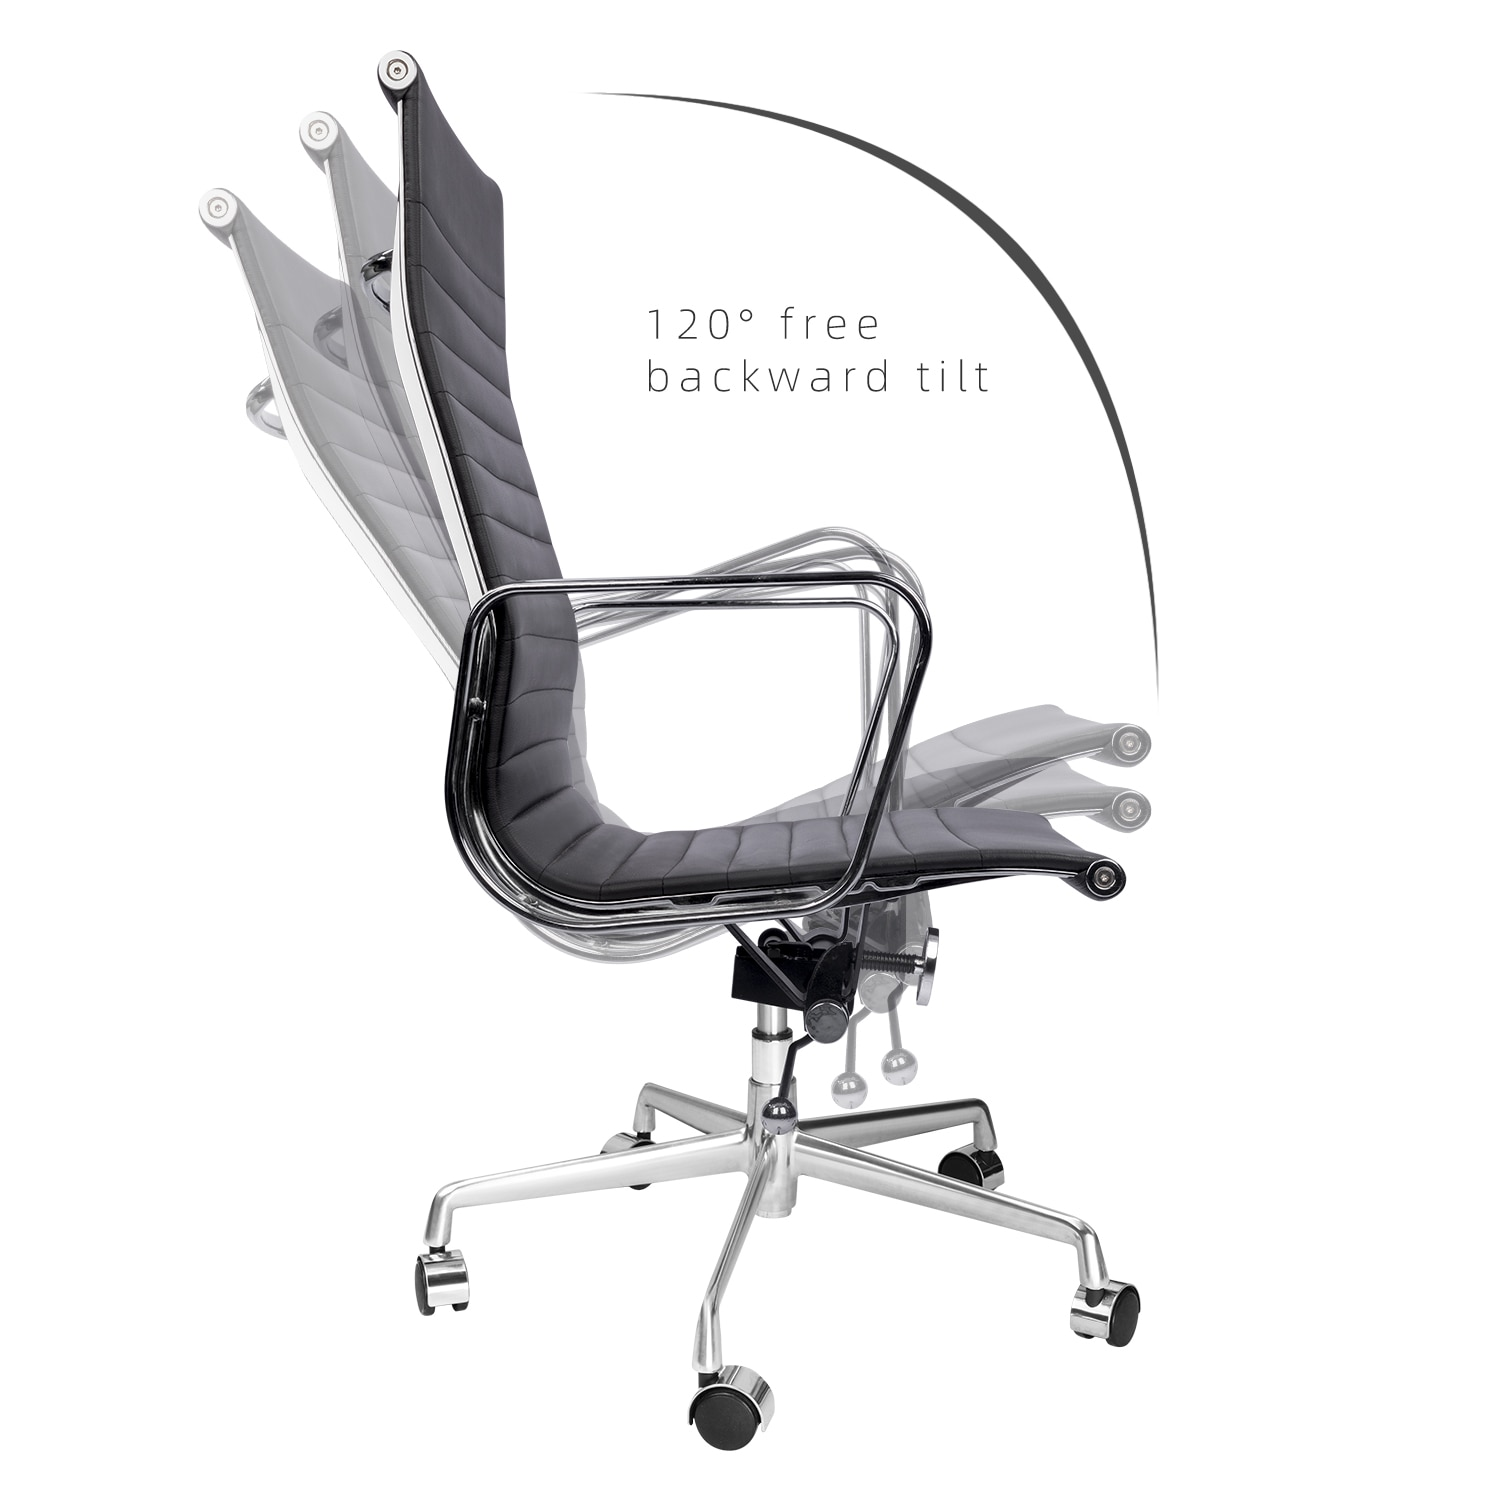 Hfe7c9a1eb6cc485dbe029a6918631fdcs - Furgle Executive Office Chair Mid Back PU Leather with Arms Rest Tilt Gaming Chair Adjustable Height with Wheels Swivel Chairs